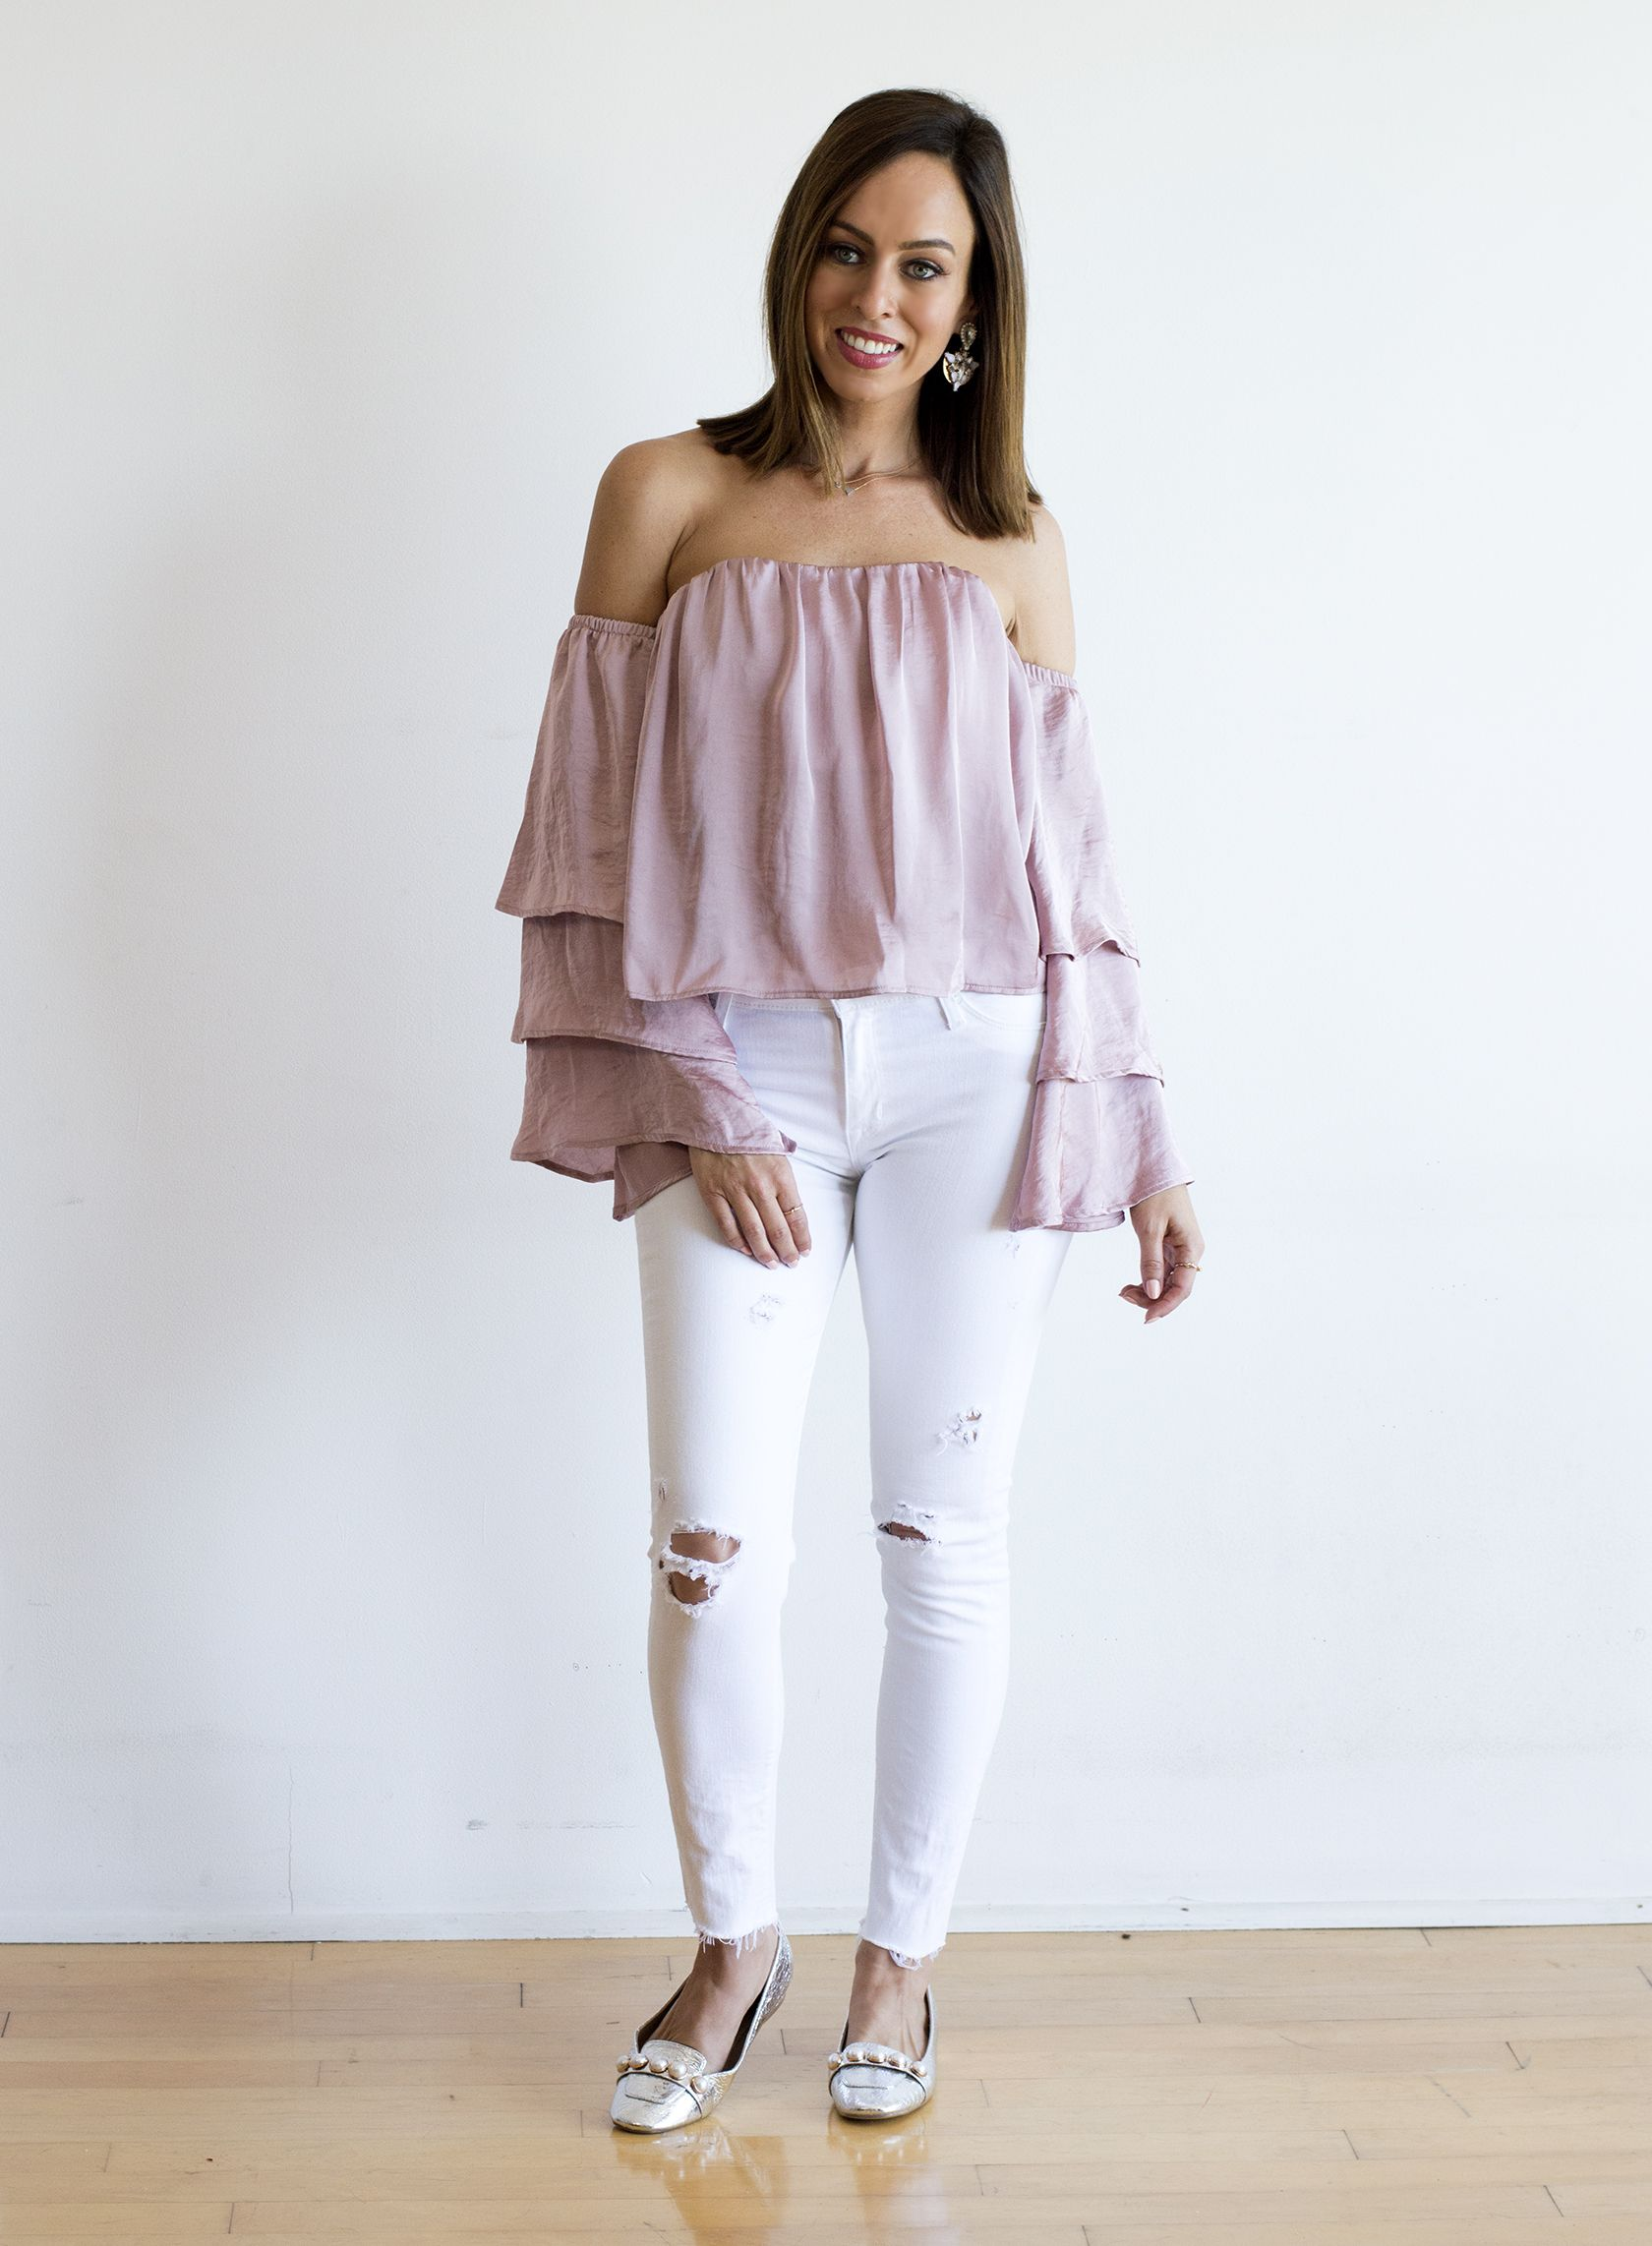 c01908d7c6f Sydne Style shows how to wear the off the shoulder trend with summer outfit  ideas in white jeans